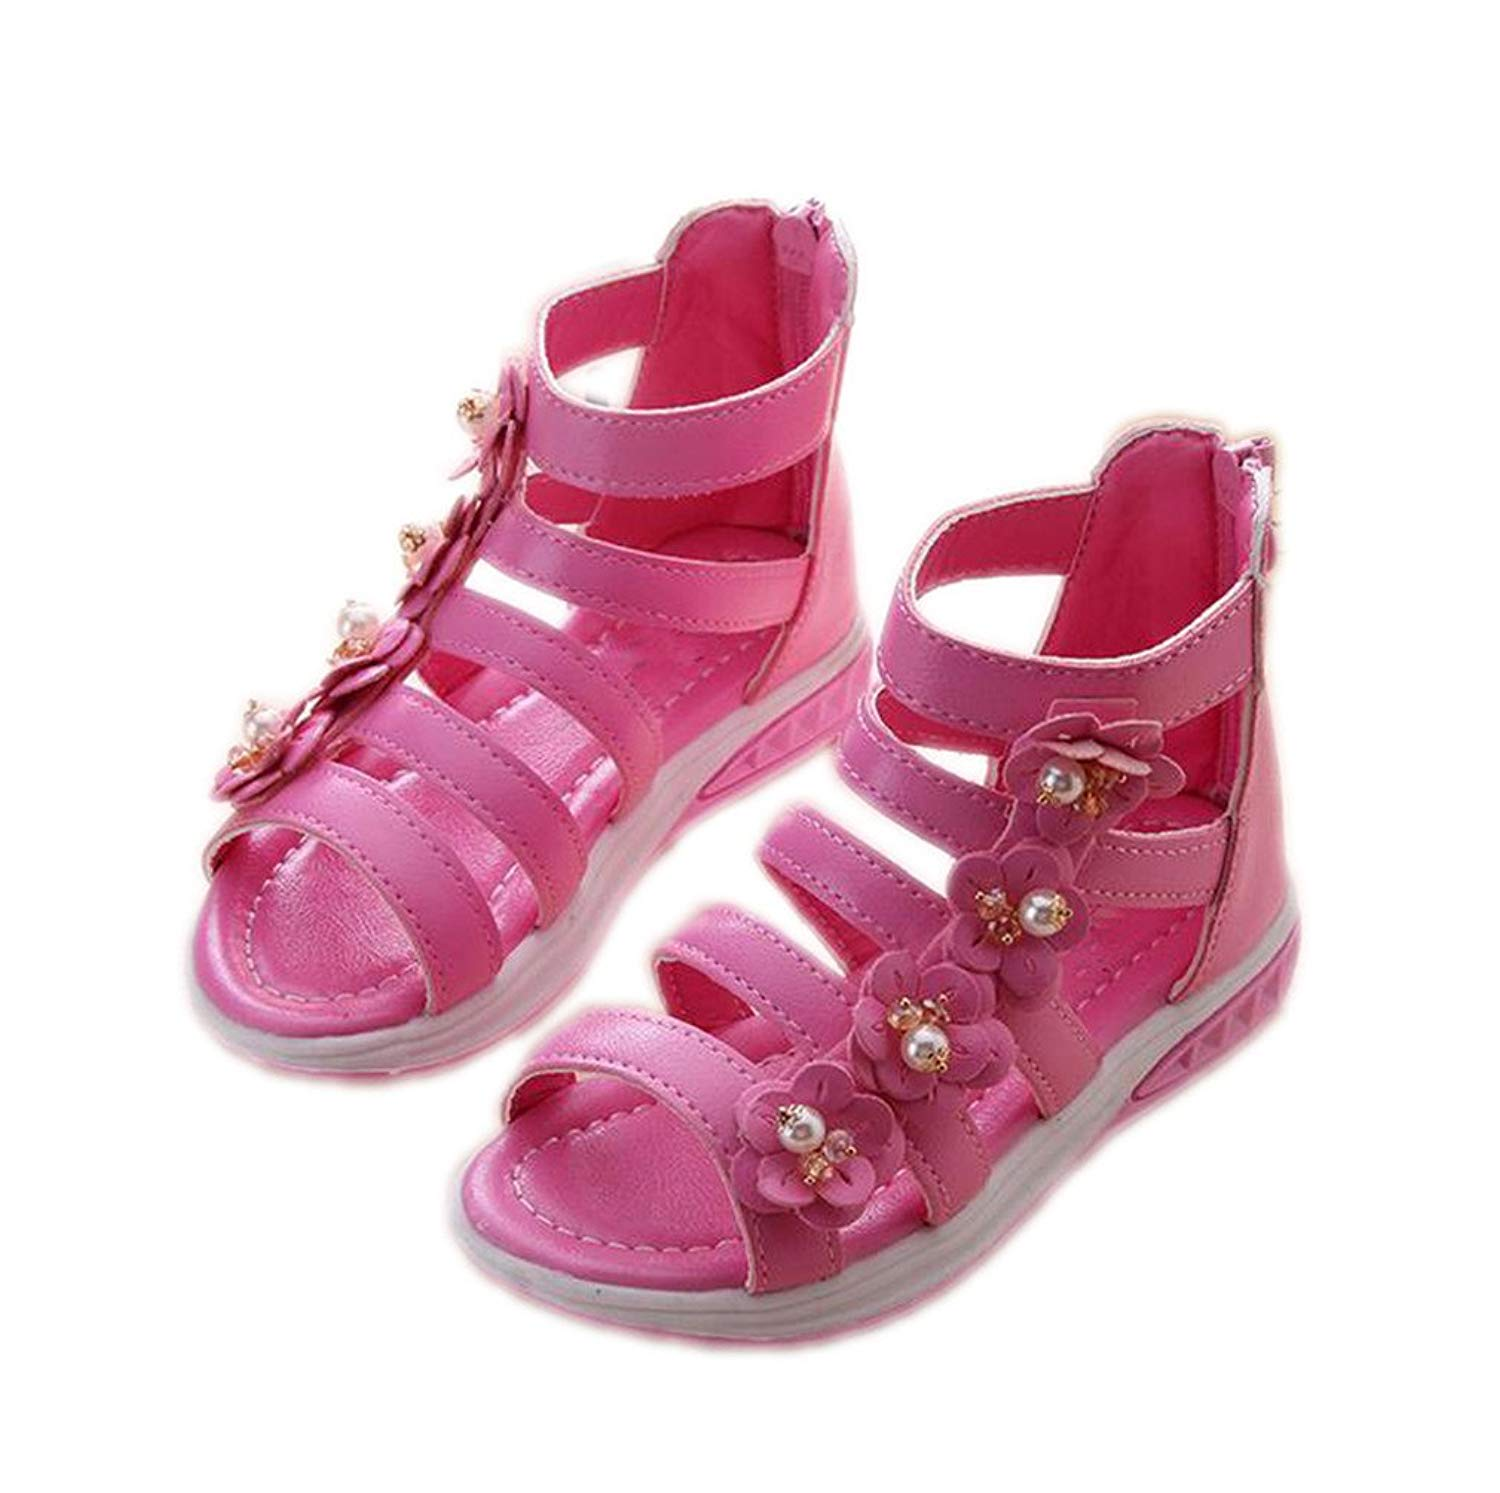 3be6650d0 Get Quotations · Summer Style Children Sandals Girls Princess Beautiful  Flower Shoes Kids Flat Sandals Baby Shoes Sneakers Girl